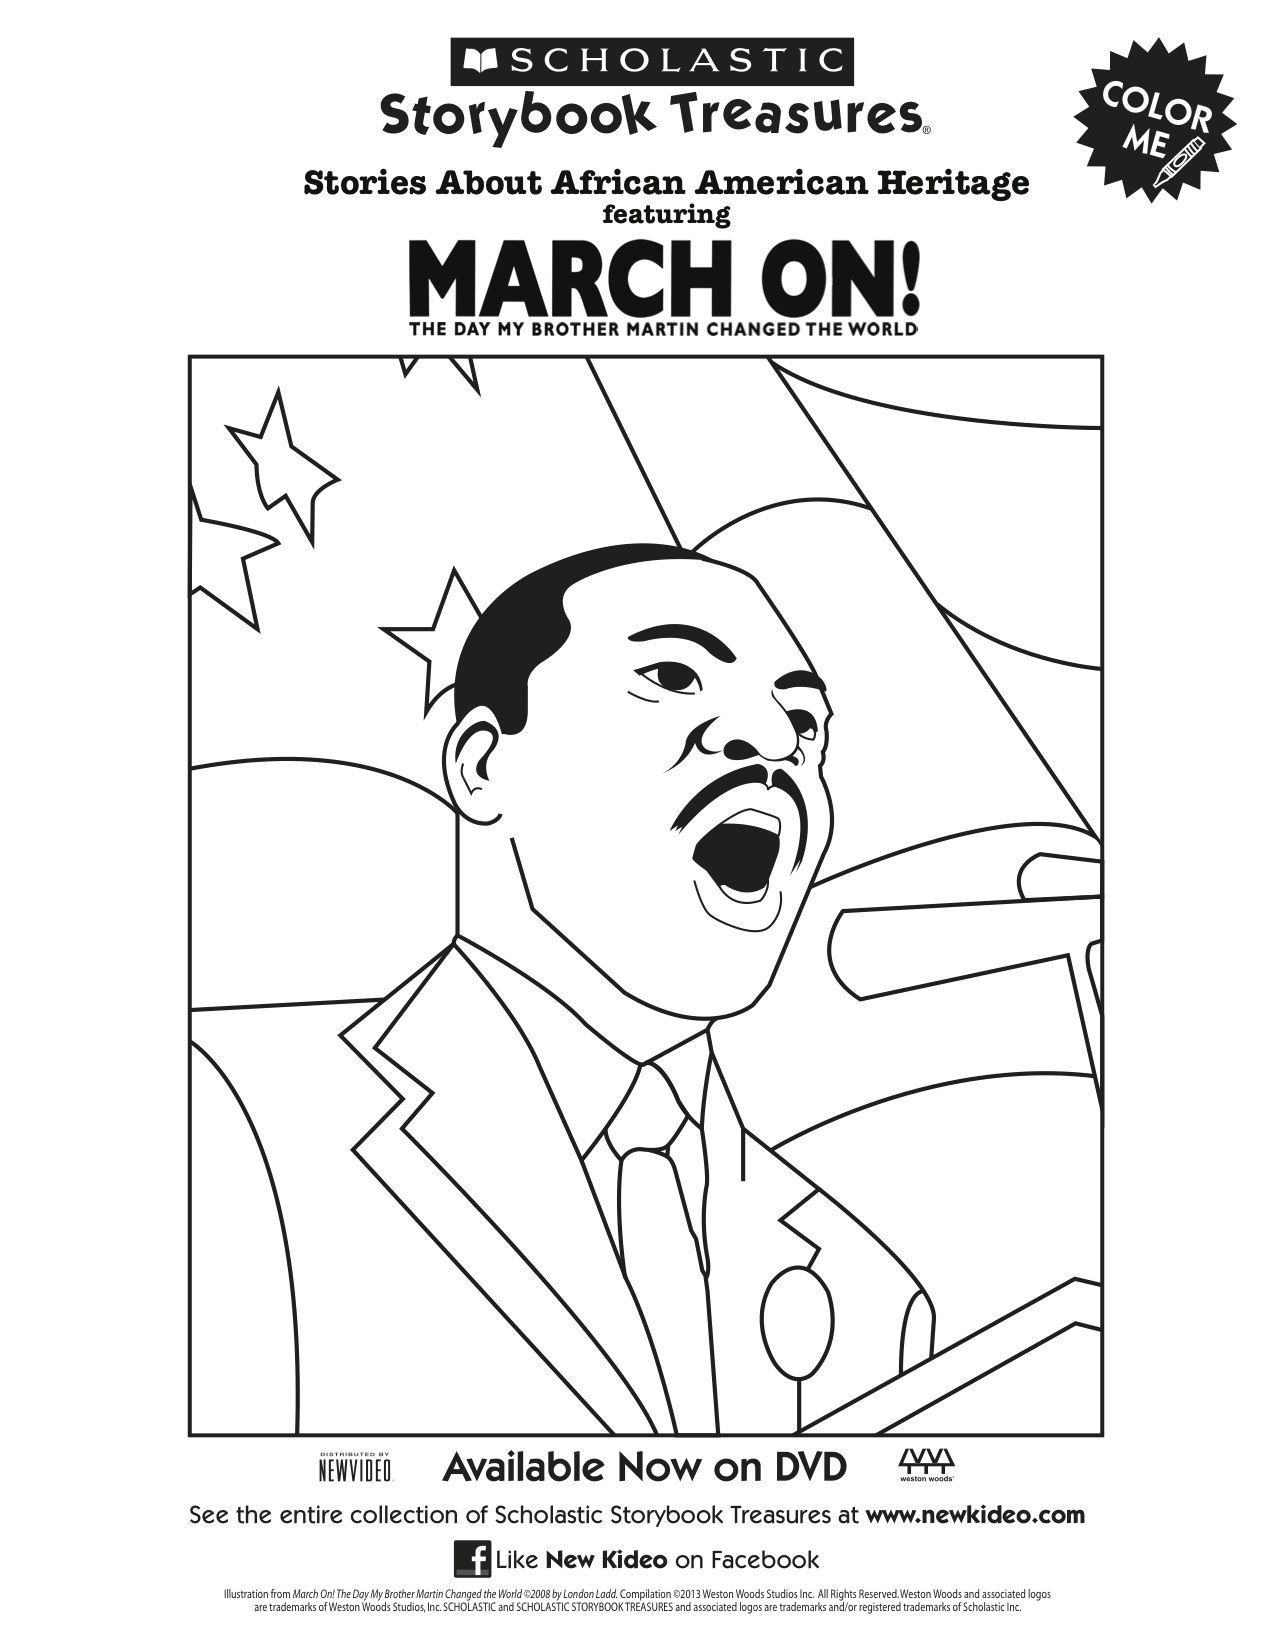 image regarding Martin Luther King Coloring Sheets Printable identified as Martin Luther King Jr. March Upon Coloring Webpage Printable